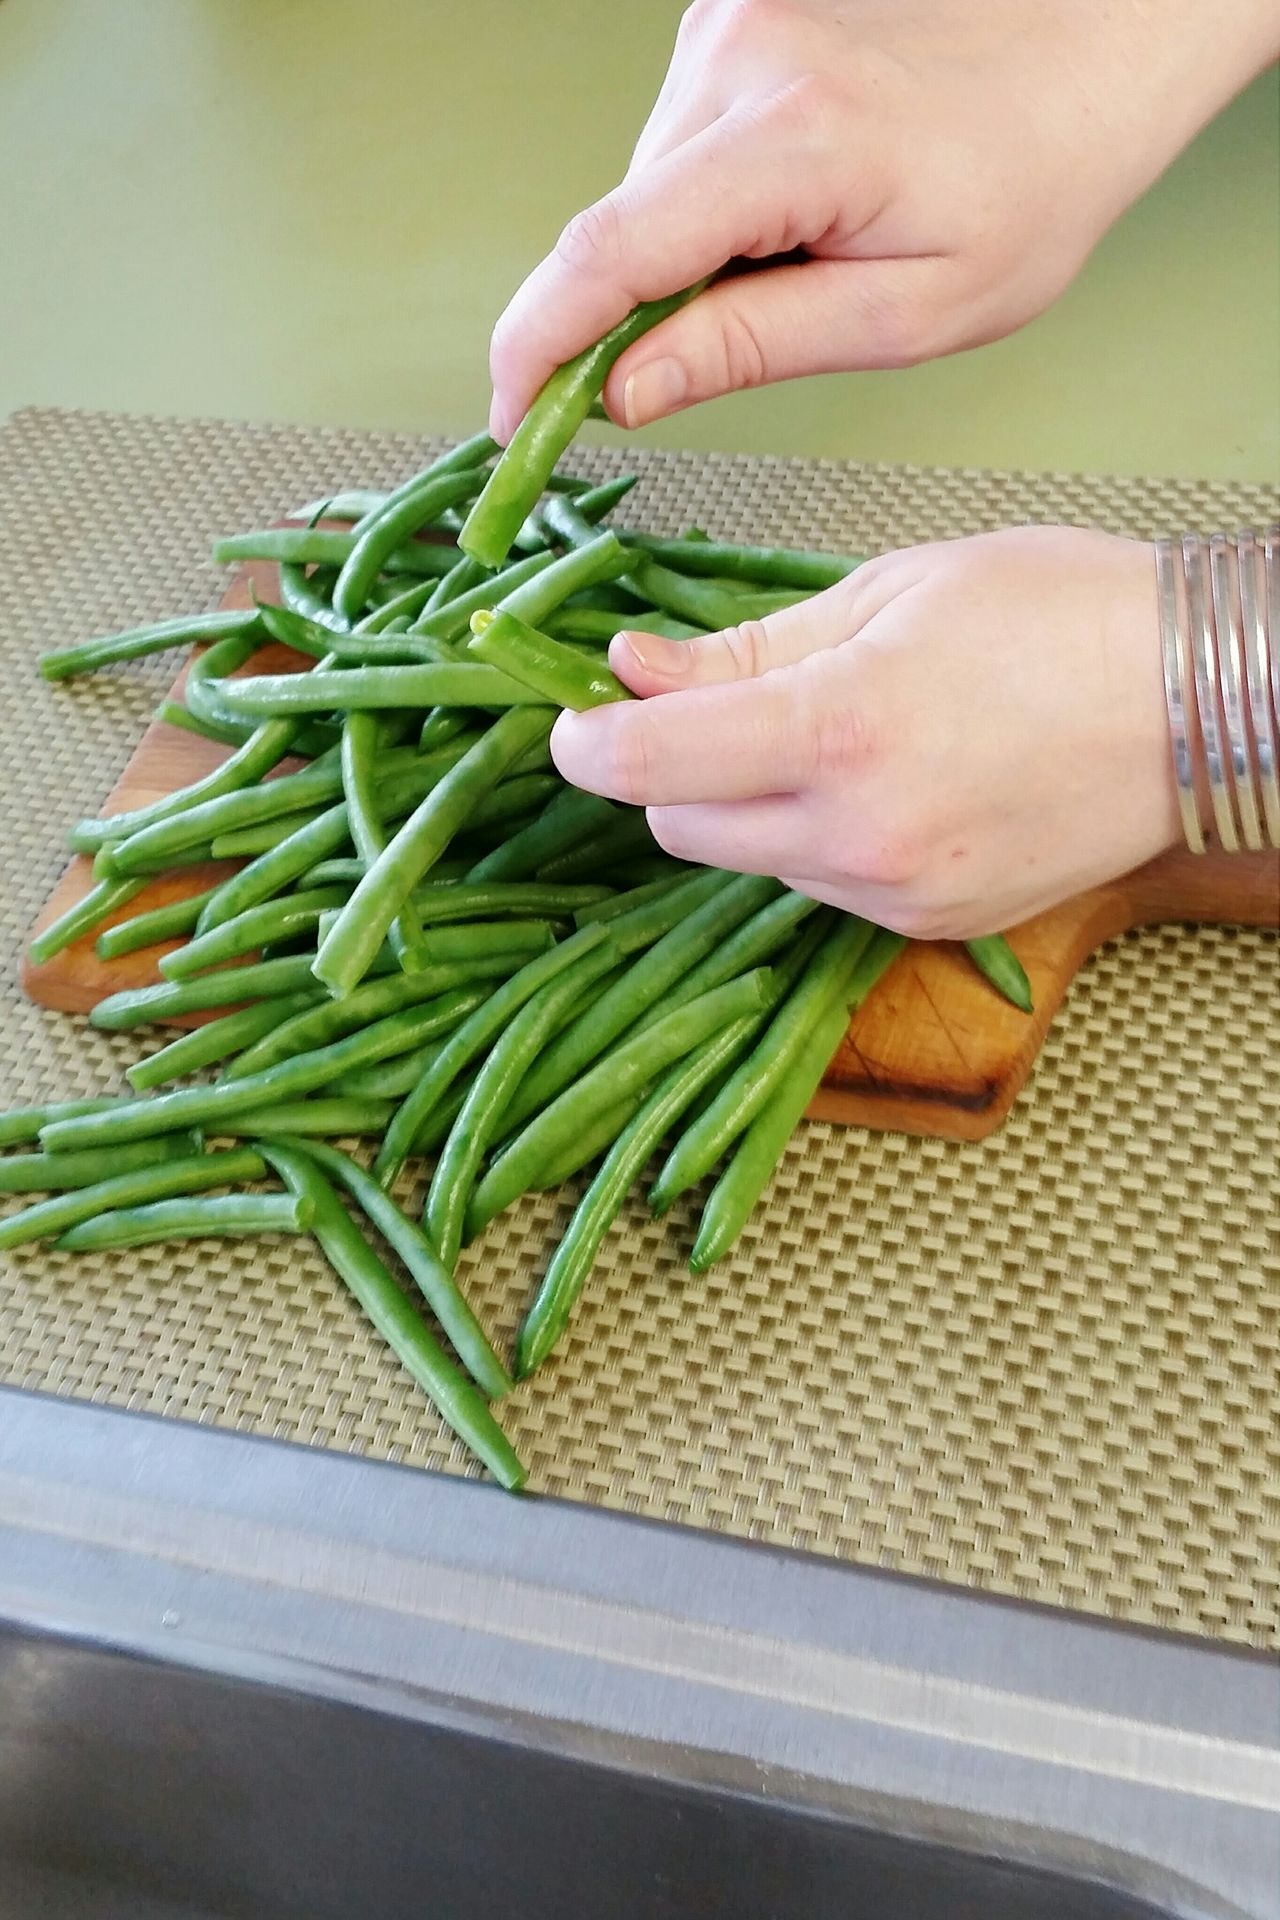 snapping fresh green beans Food Photography Fixing Dinner Fresh Vegetables Vegetables Food Prep Food Preparation Hands Hands At Work Human Hand Human Body Part Female Fresh Produce Green Beans Visual Feast